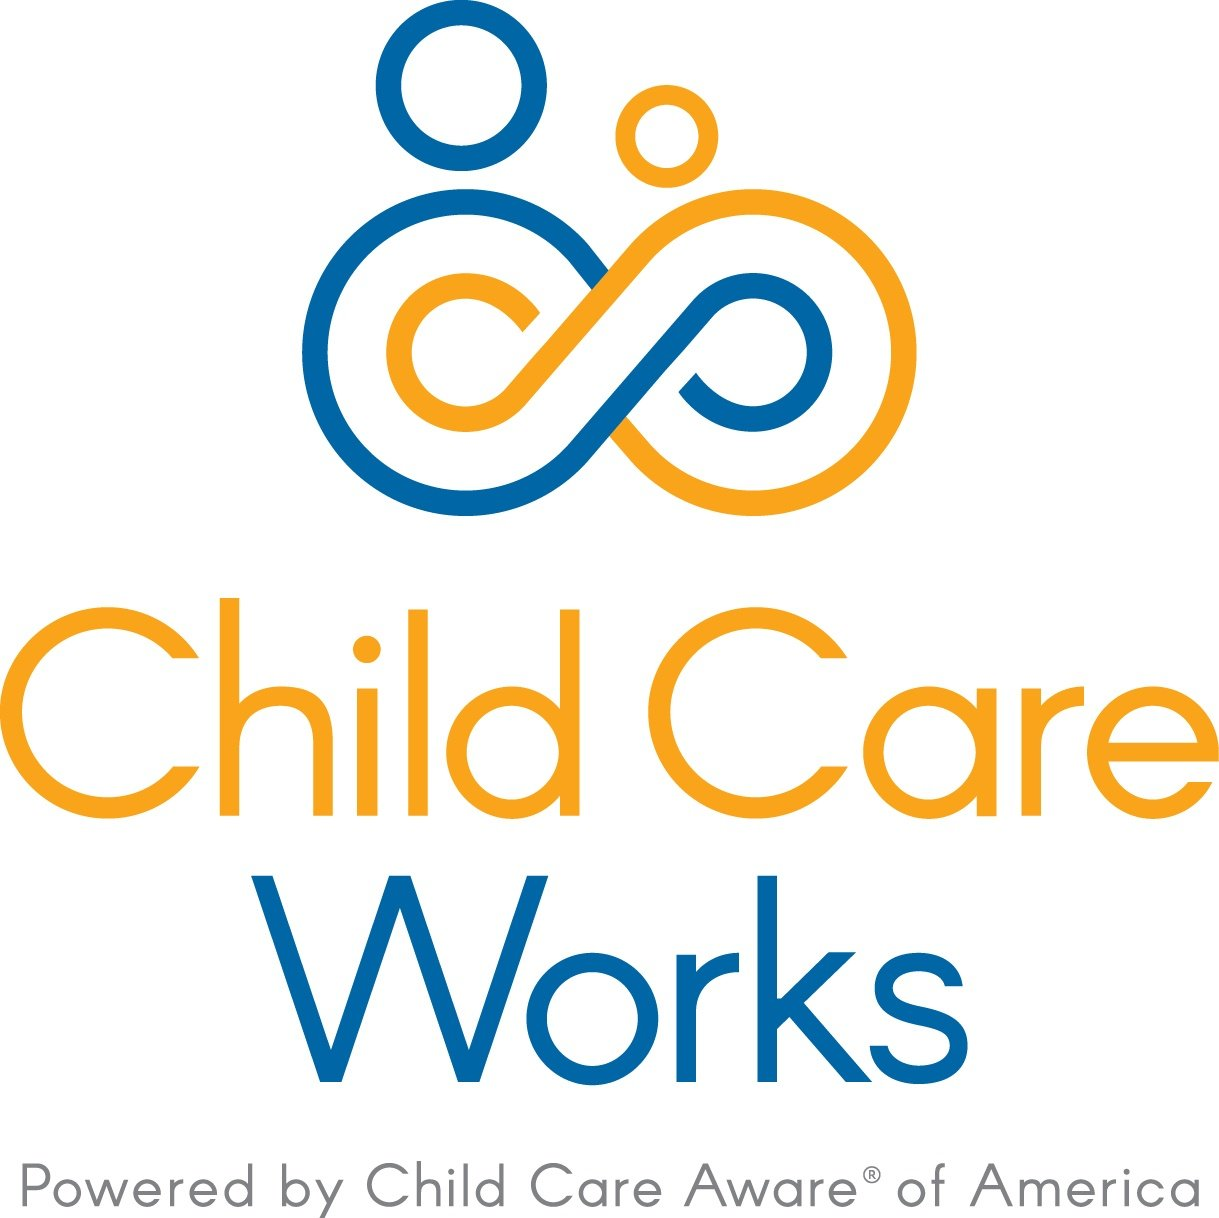 Child Care Aware® of America Launches a Movement to Make Child Care Work for America